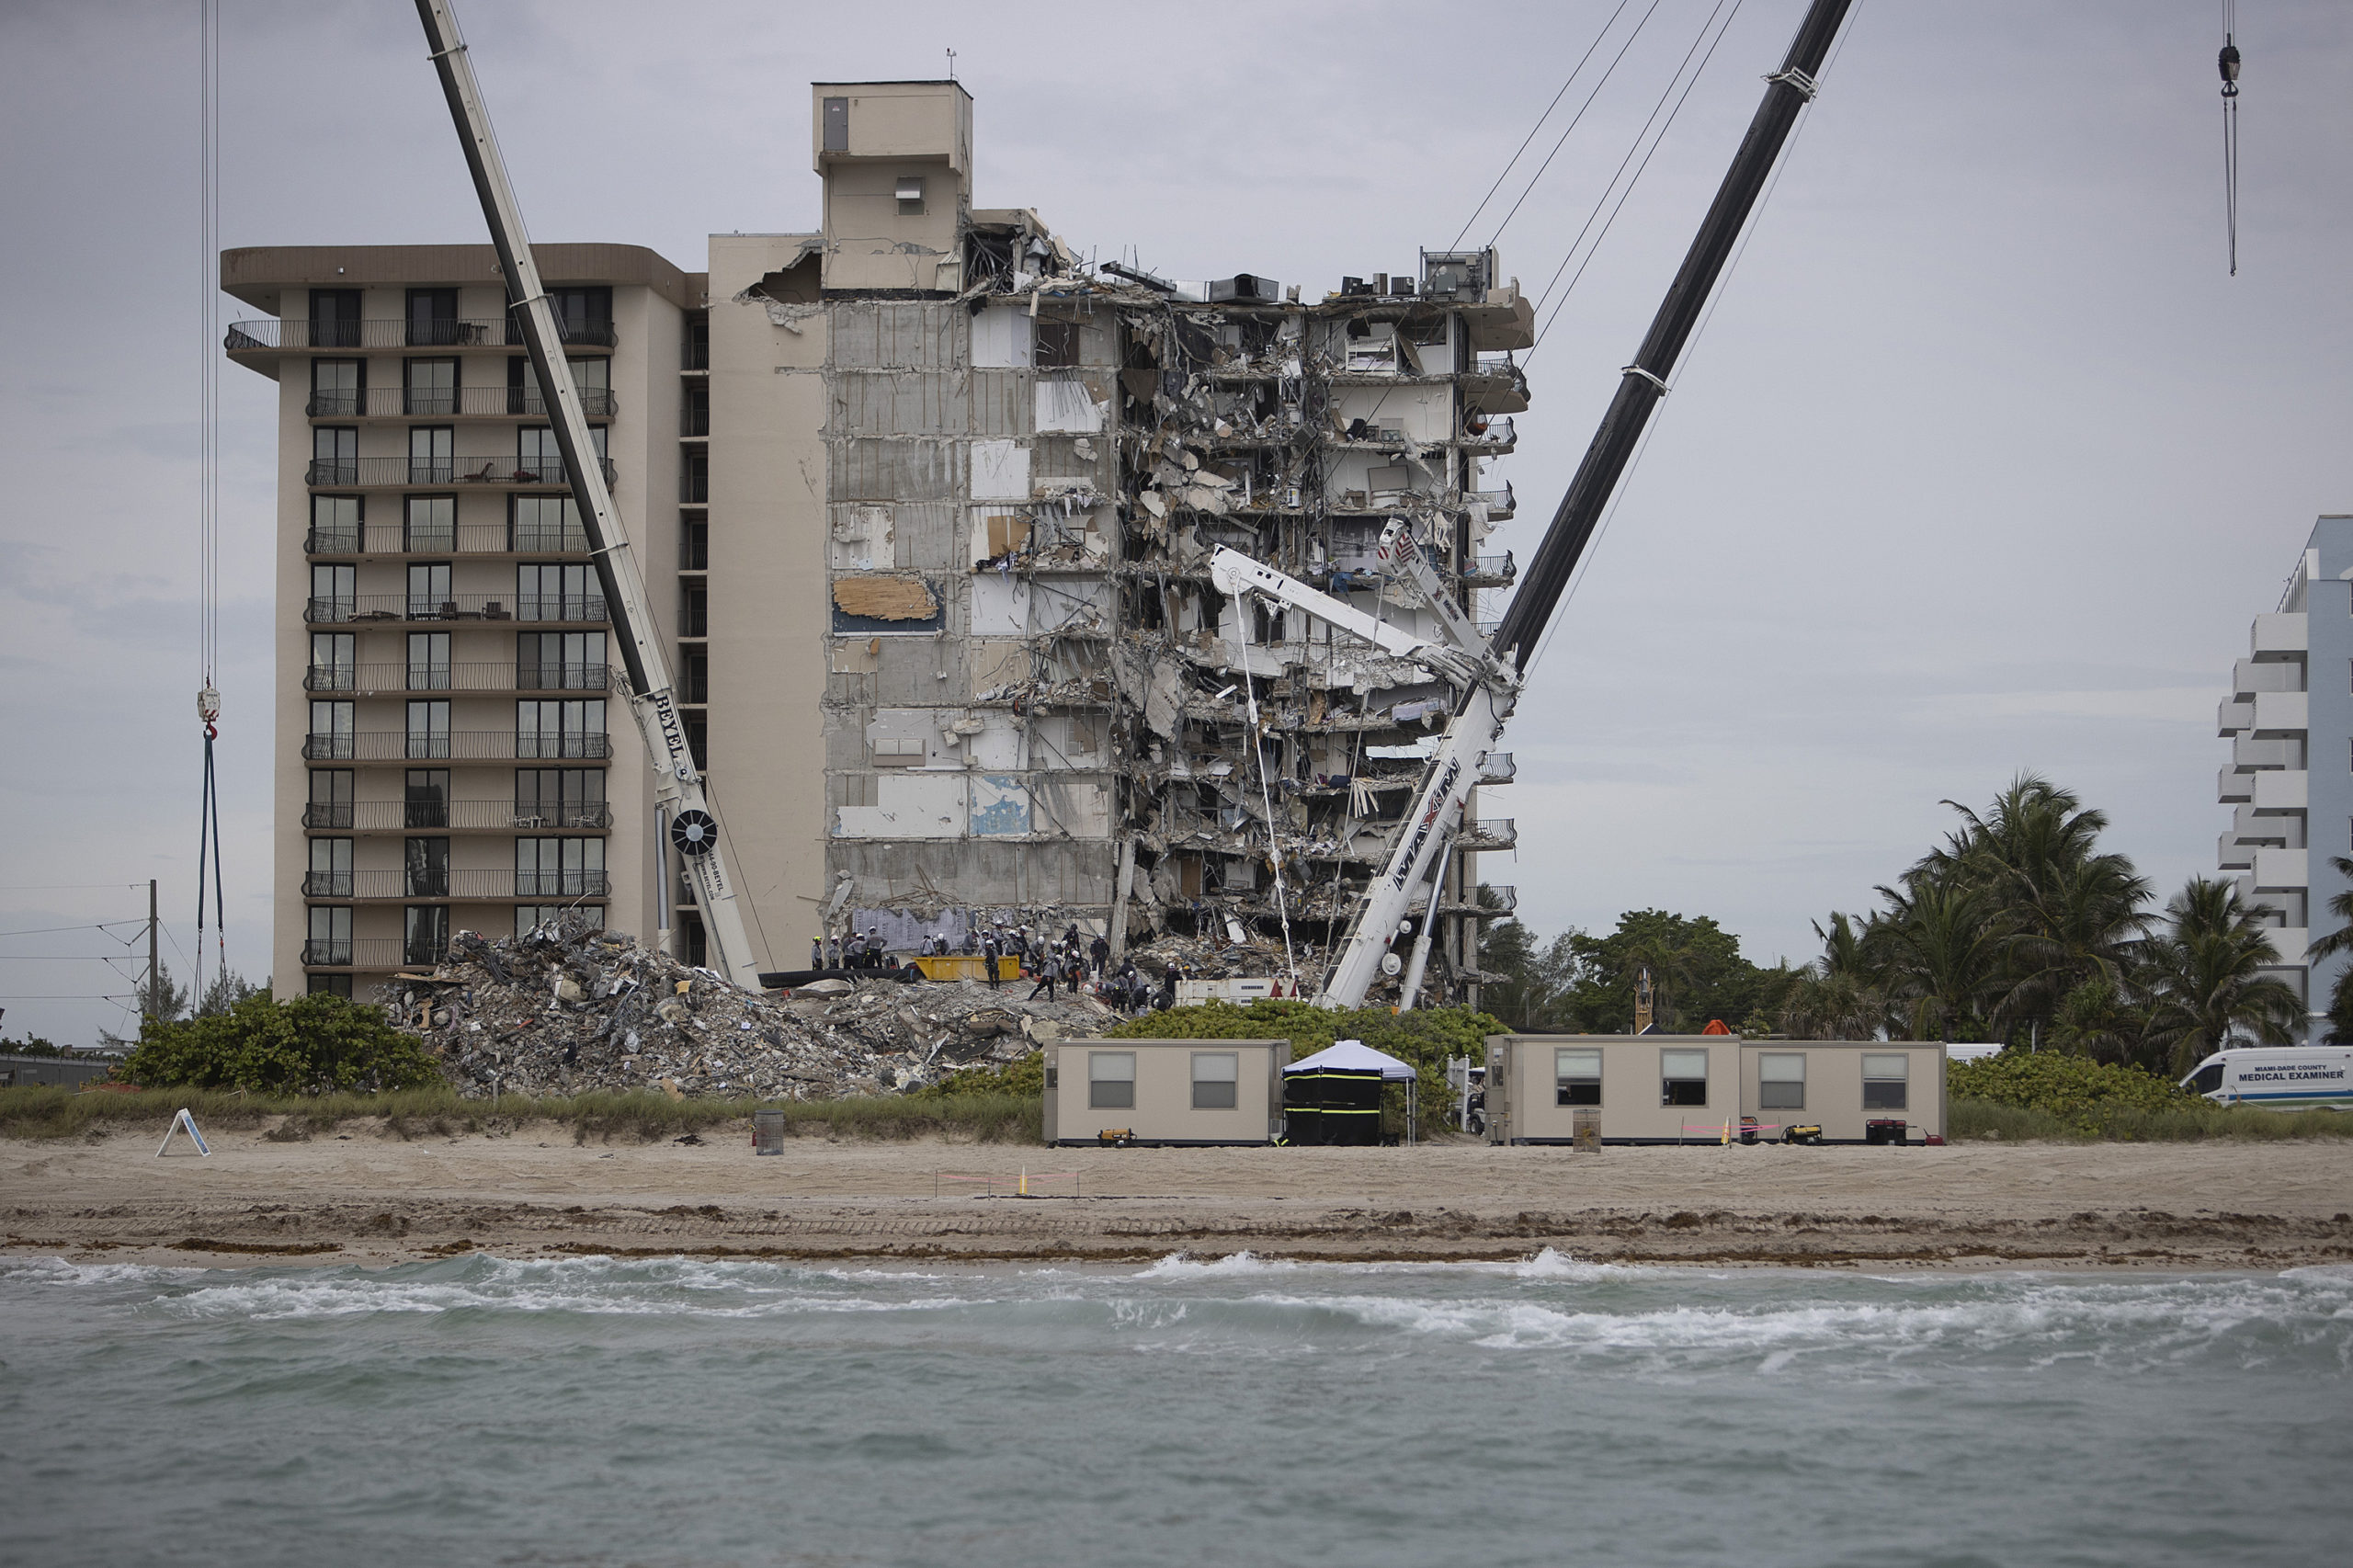 Search and Rescue teams look for possible survivors and to recover remains in the partially collapsed 12-story Champlain Towers South condo building on June 29, 2021 in Surfside, Florida. Over one hundred people are being reported as missing as the search-and-rescue effort continues. (Photo by Joe Raedle/Getty Images)